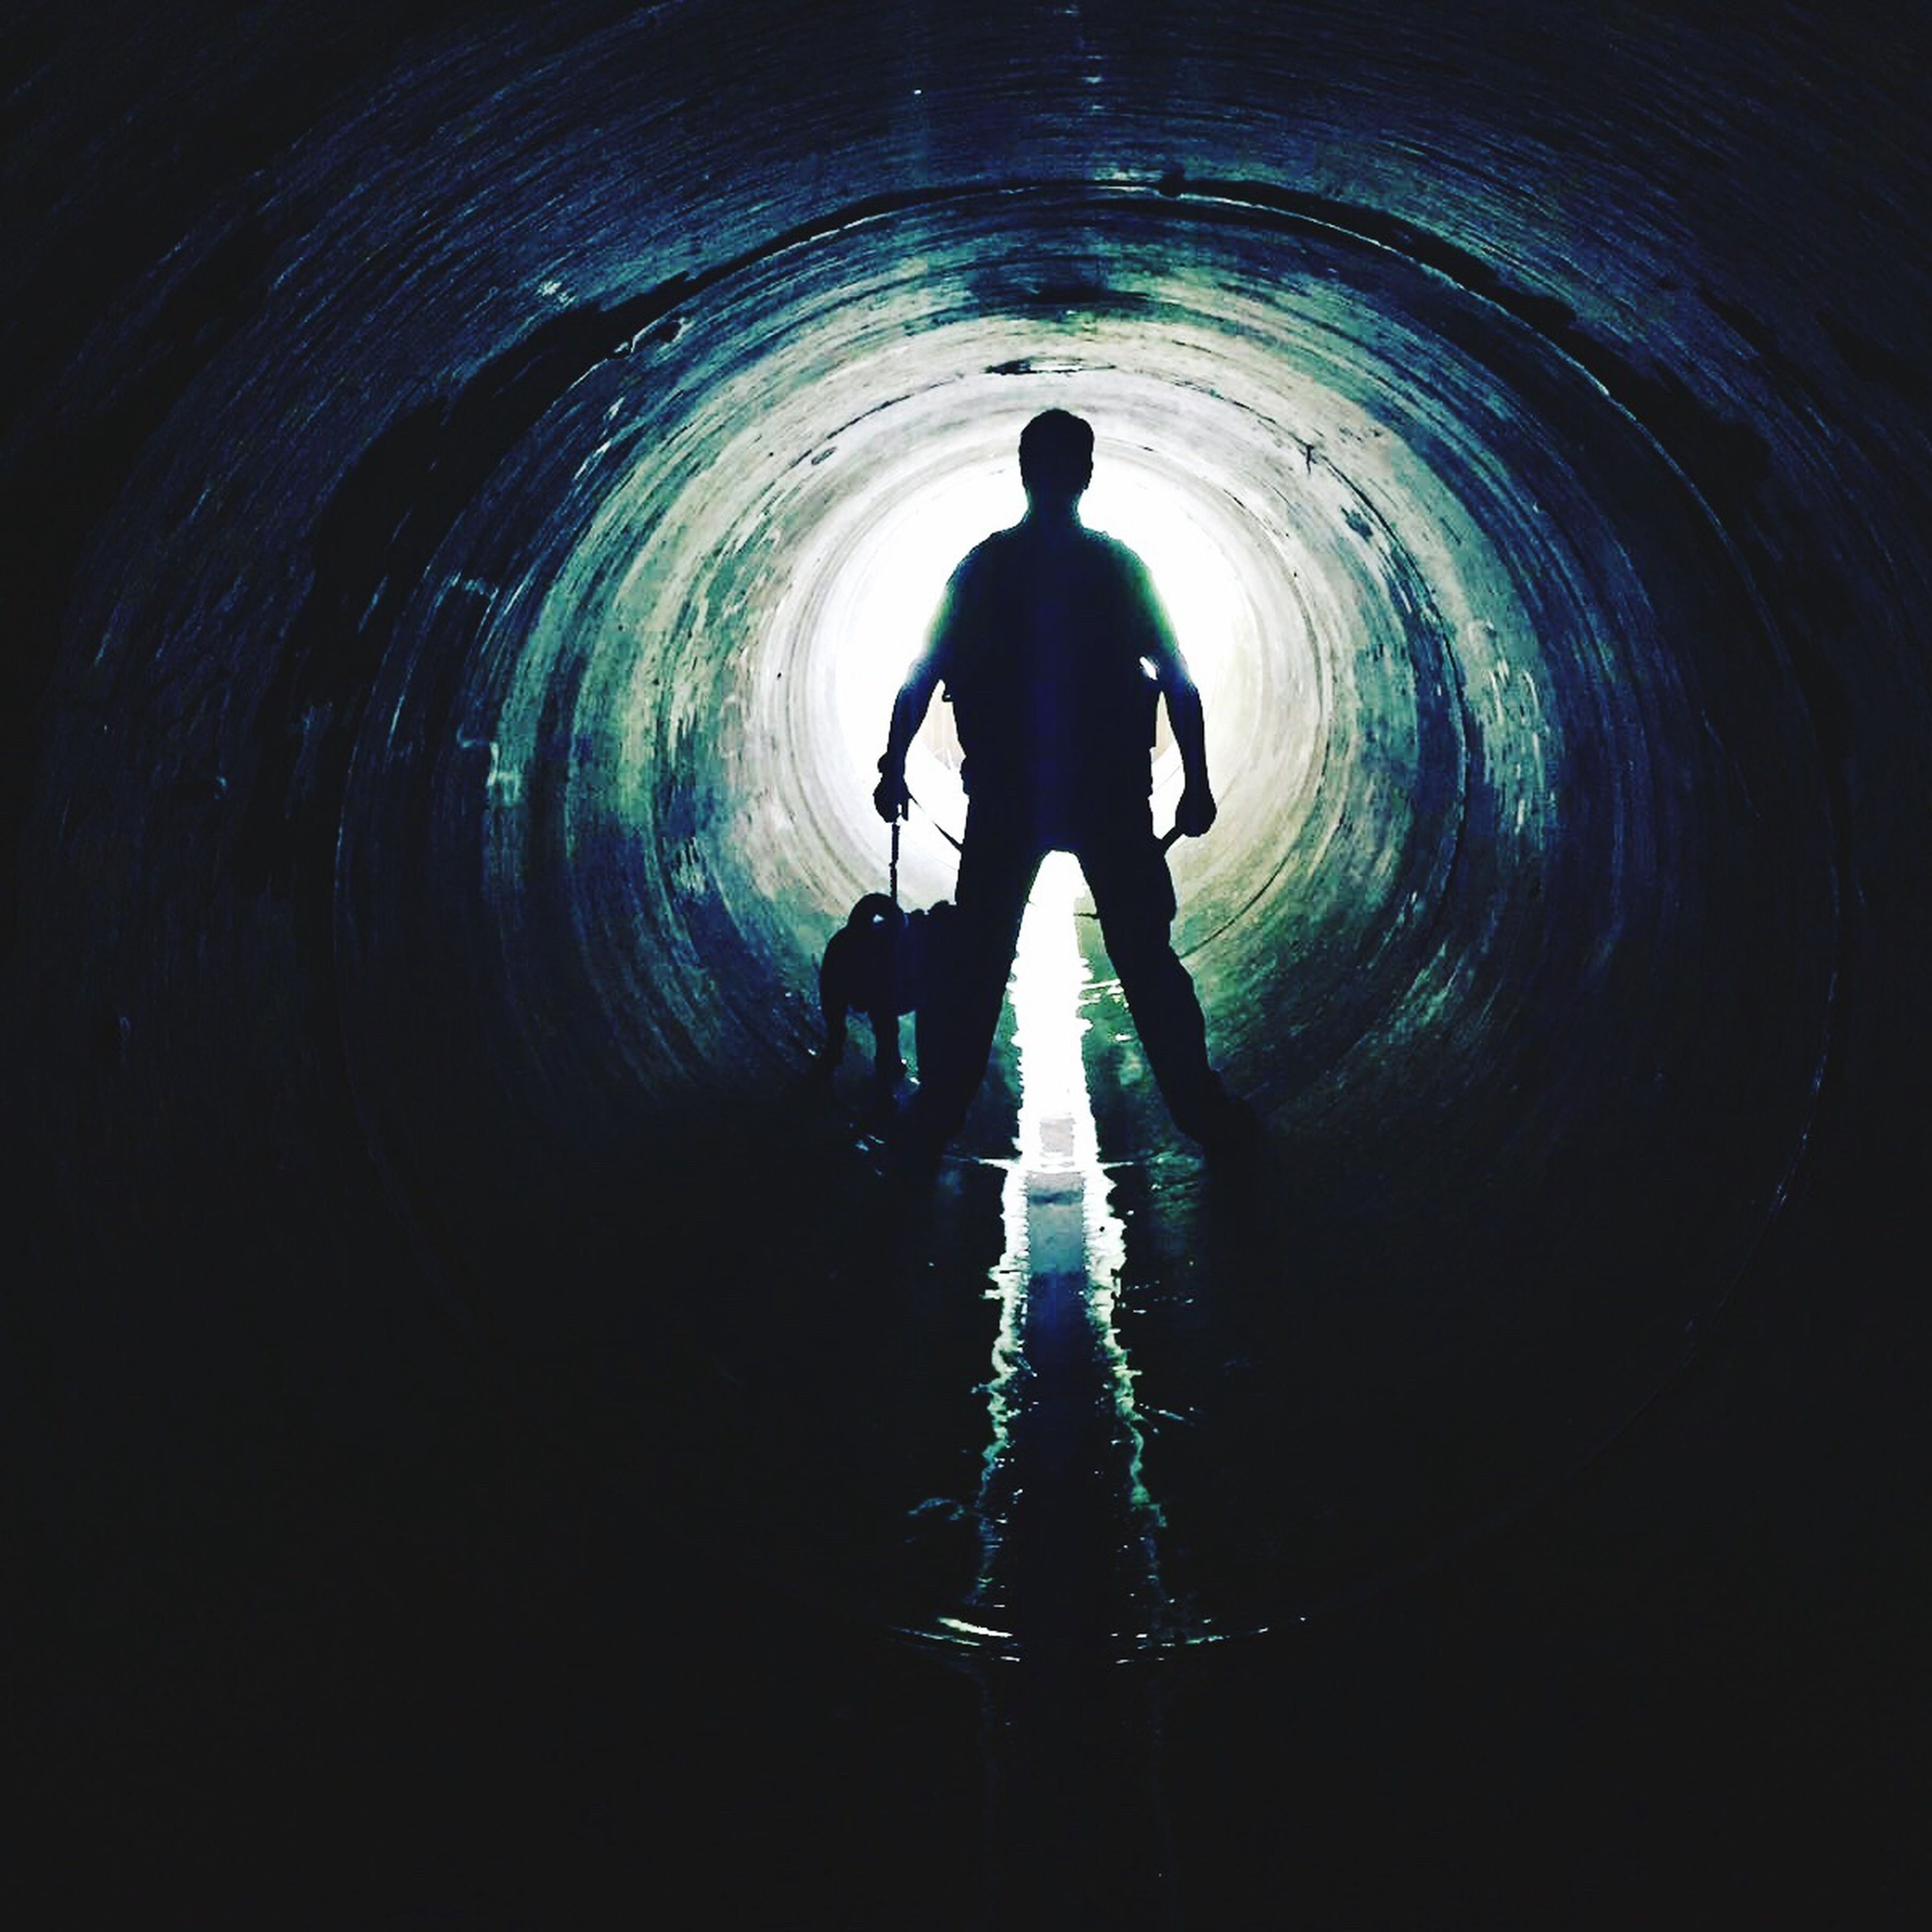 silhouette, lifestyles, men, tunnel, full length, walking, indoors, leisure activity, rear view, togetherness, boys, bonding, standing, holding hands, childhood, dark